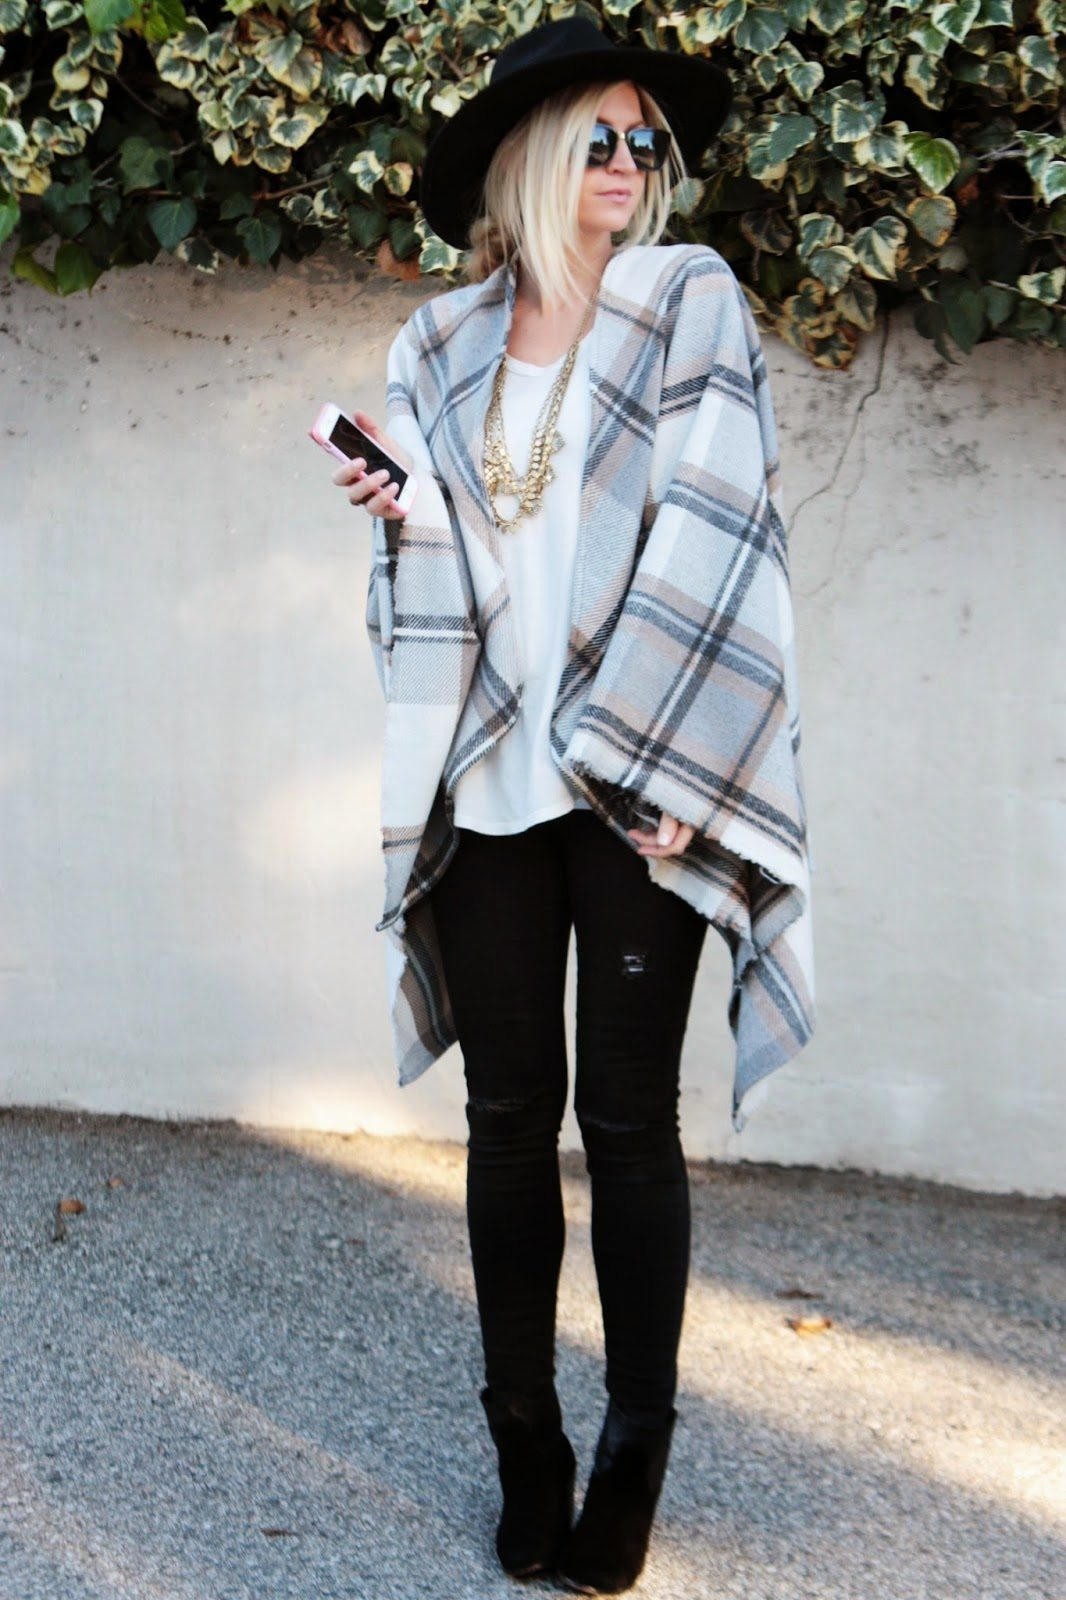 DRAPED IN PLAID + CAPE TUTORIAL